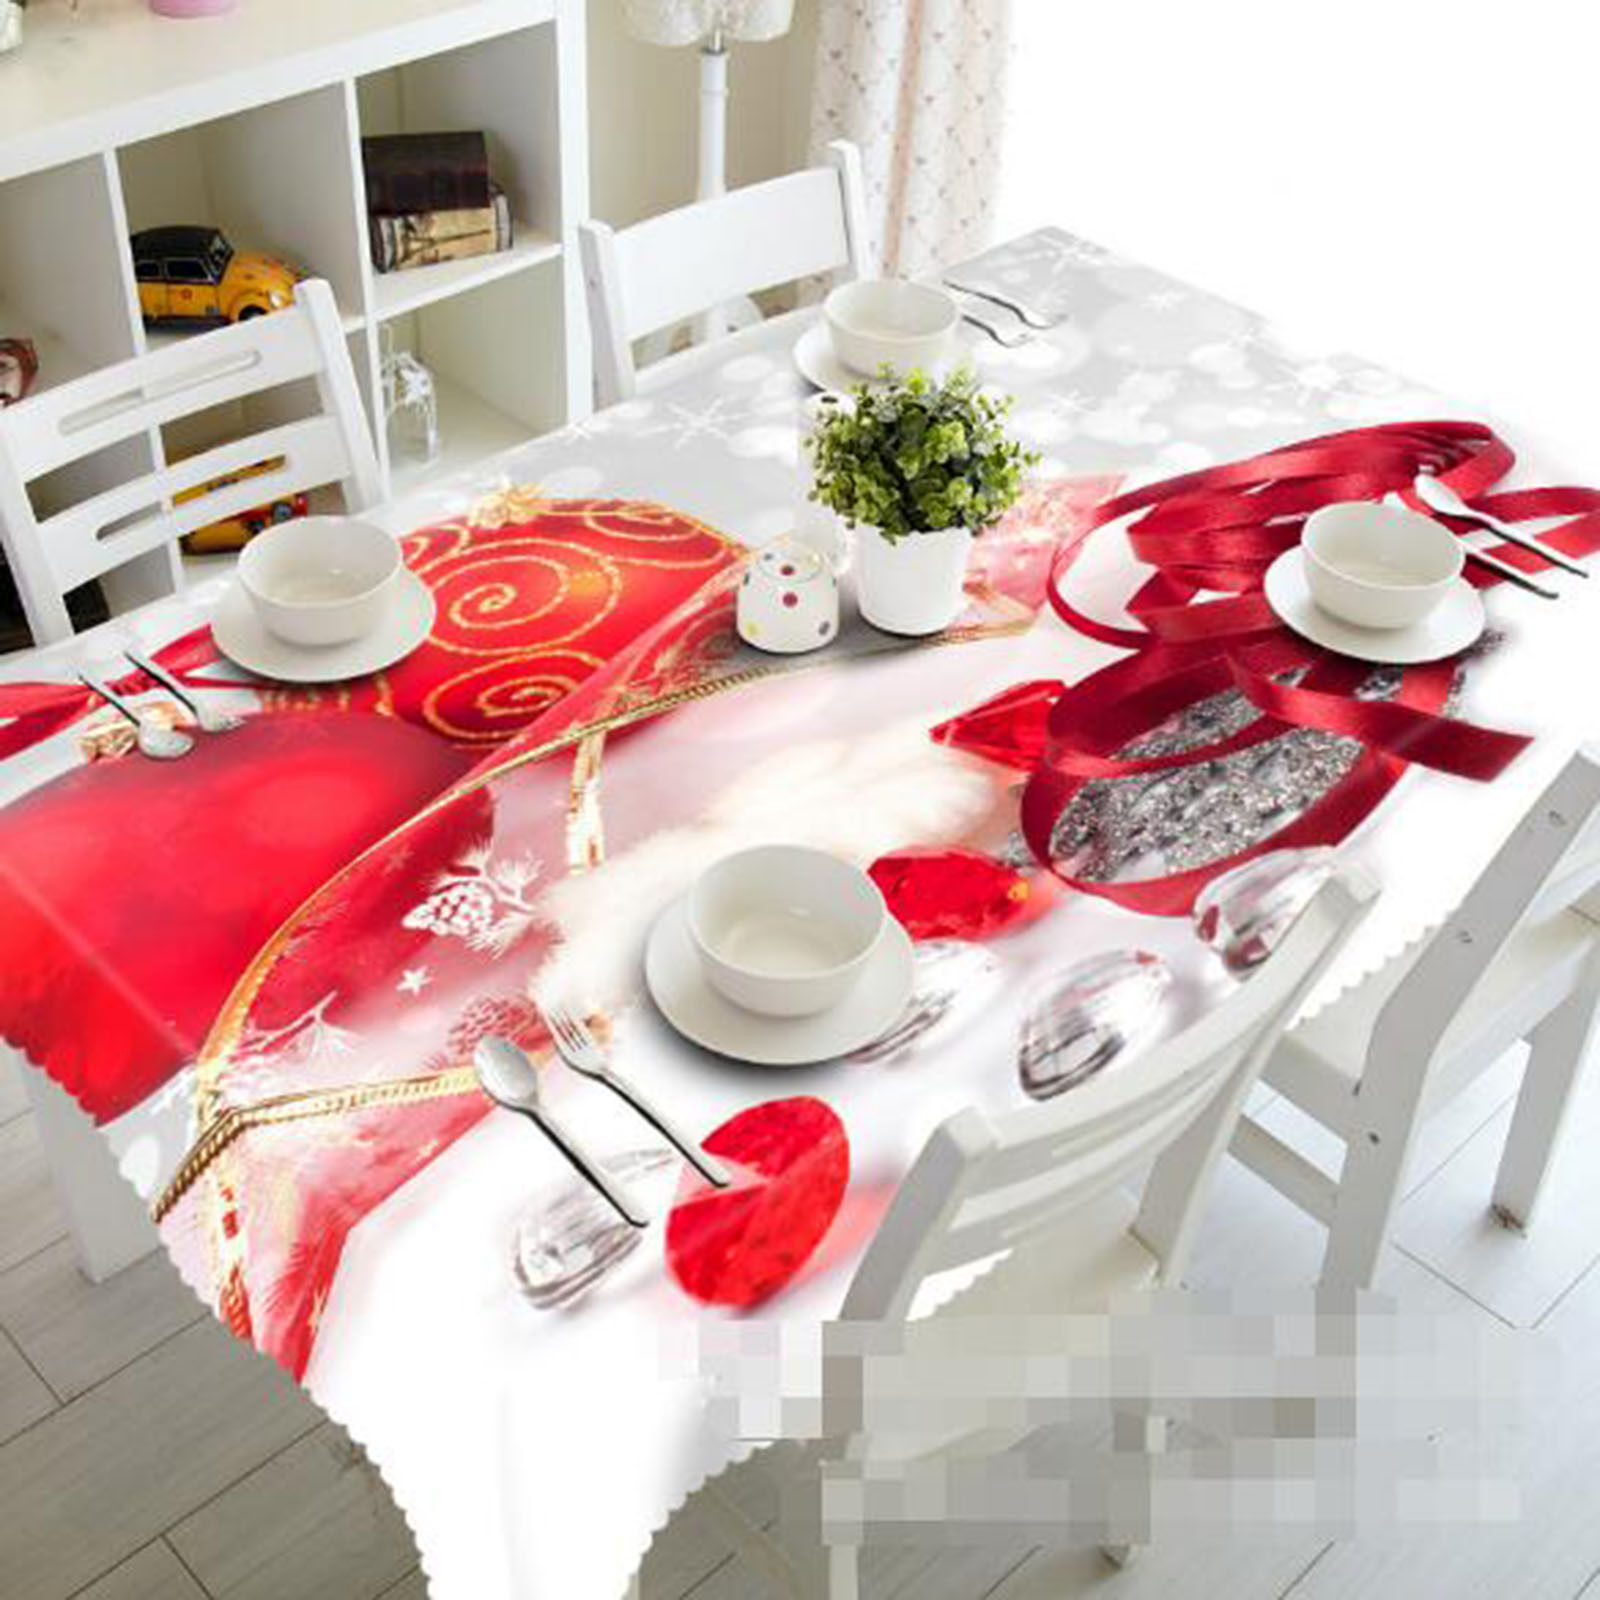 3D Red Pattern Tablecloth Table Cover Cloth Birthday Party AJ WALLPAPER UK Lemon